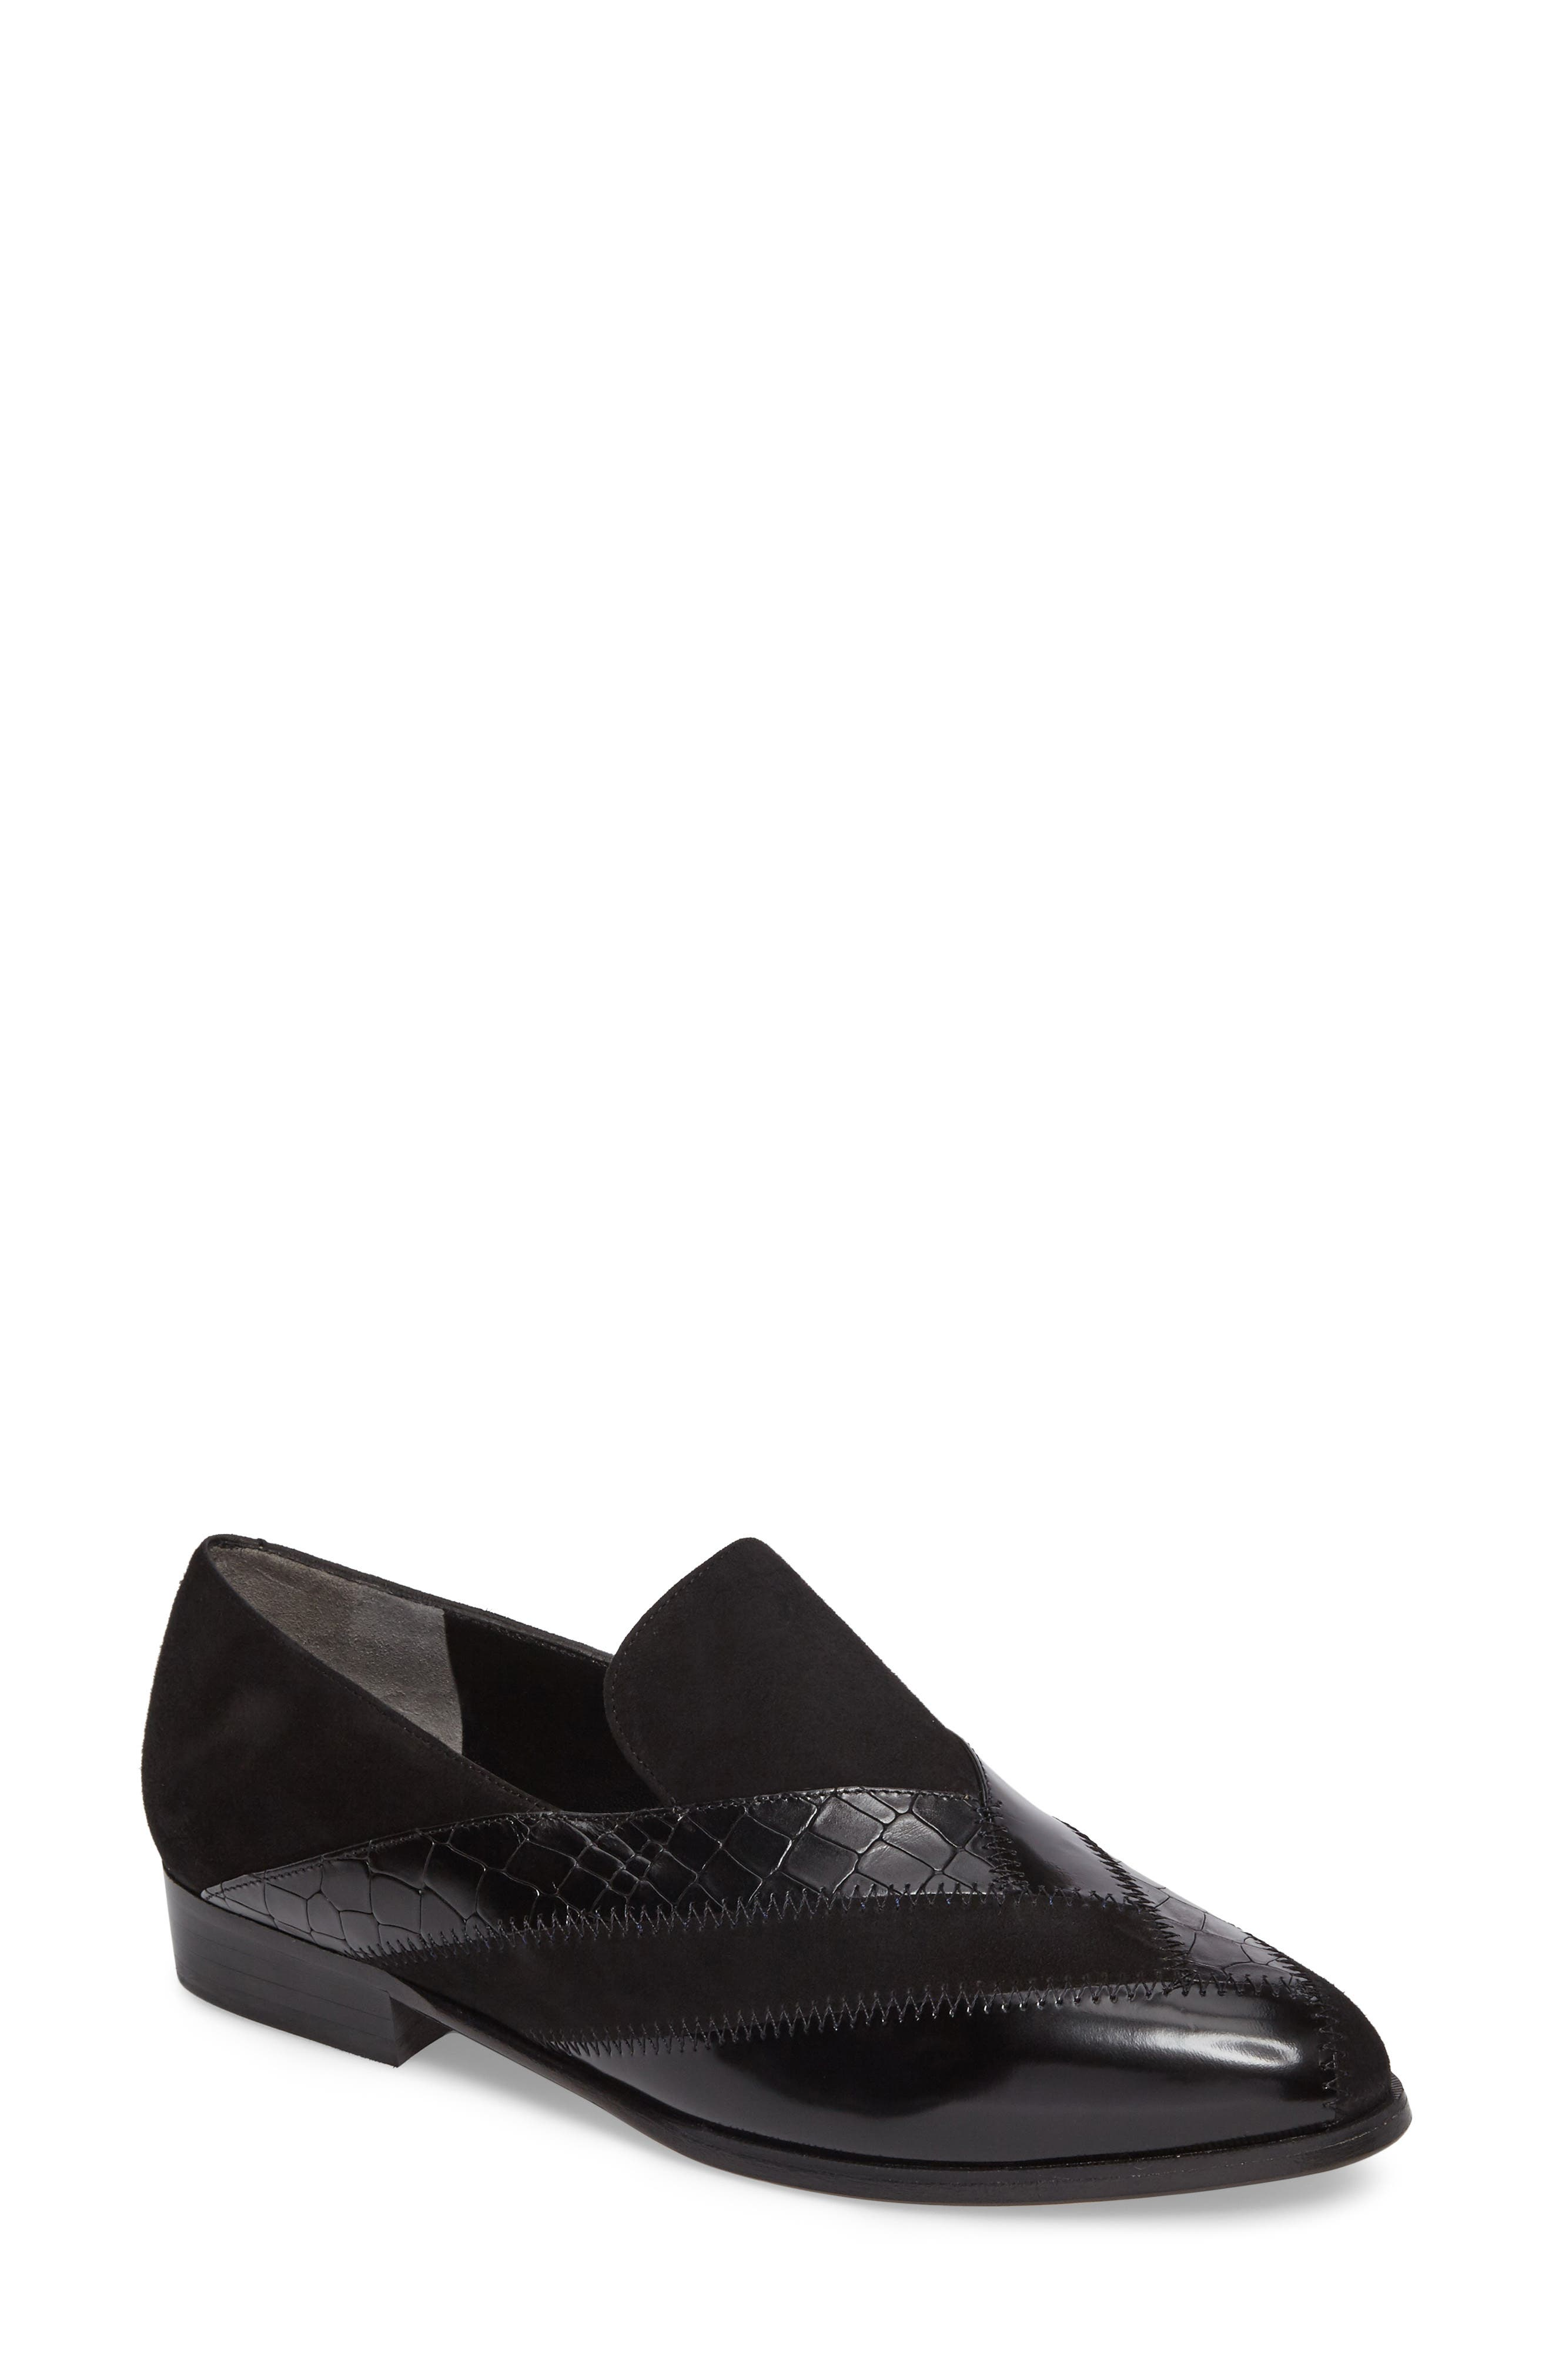 Alternate Image 1 Selected - Robert Clergerie Atum Loafer (Women)